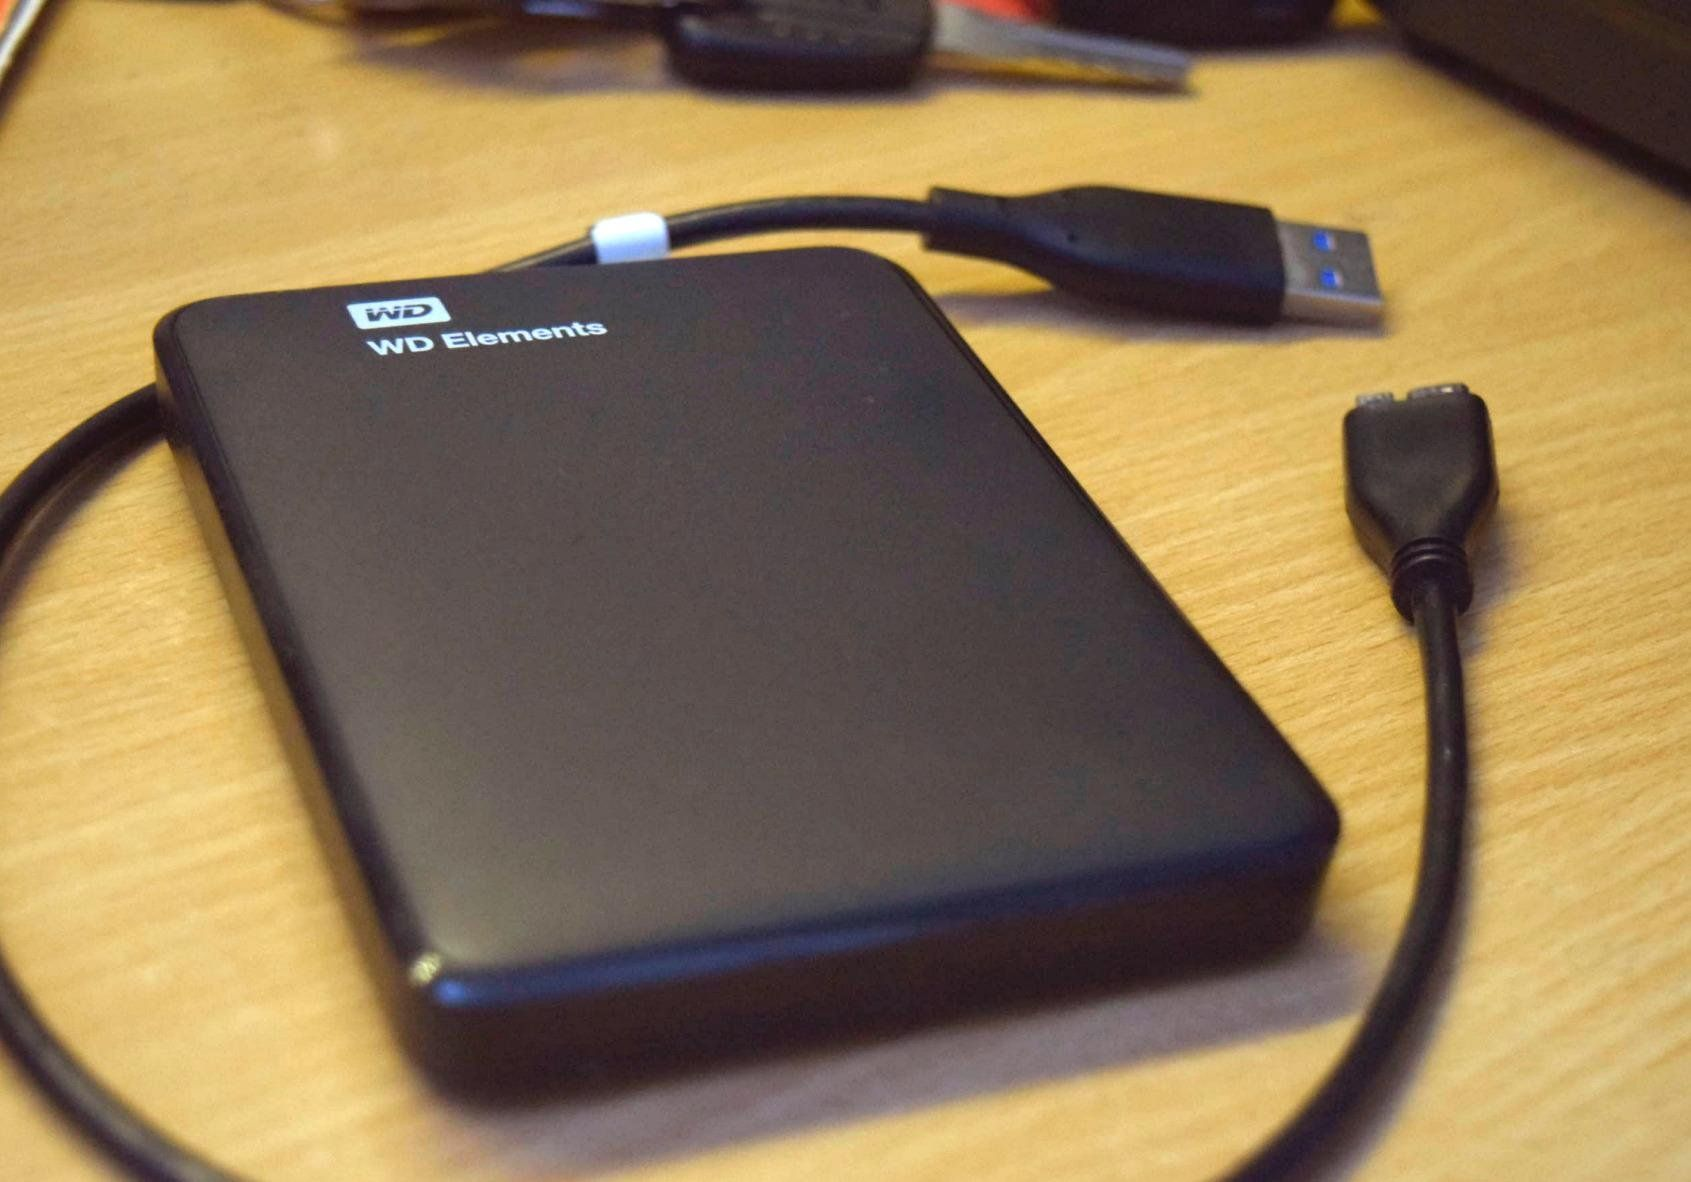 The Best Budget External Hard Drive Tactful Minds Hardisk Wd Elements 1tb Is